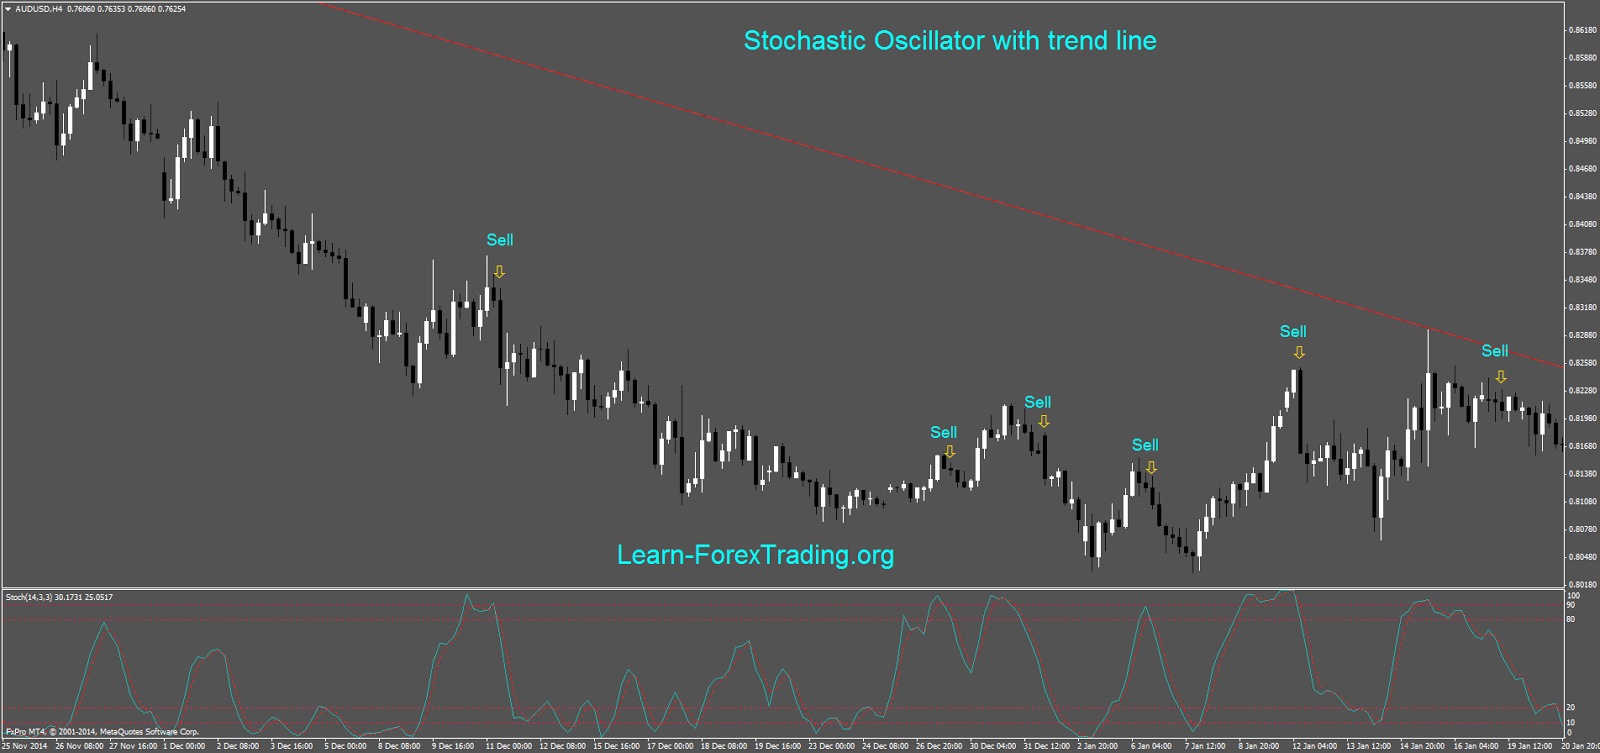 Stochastic oscillator with trend line